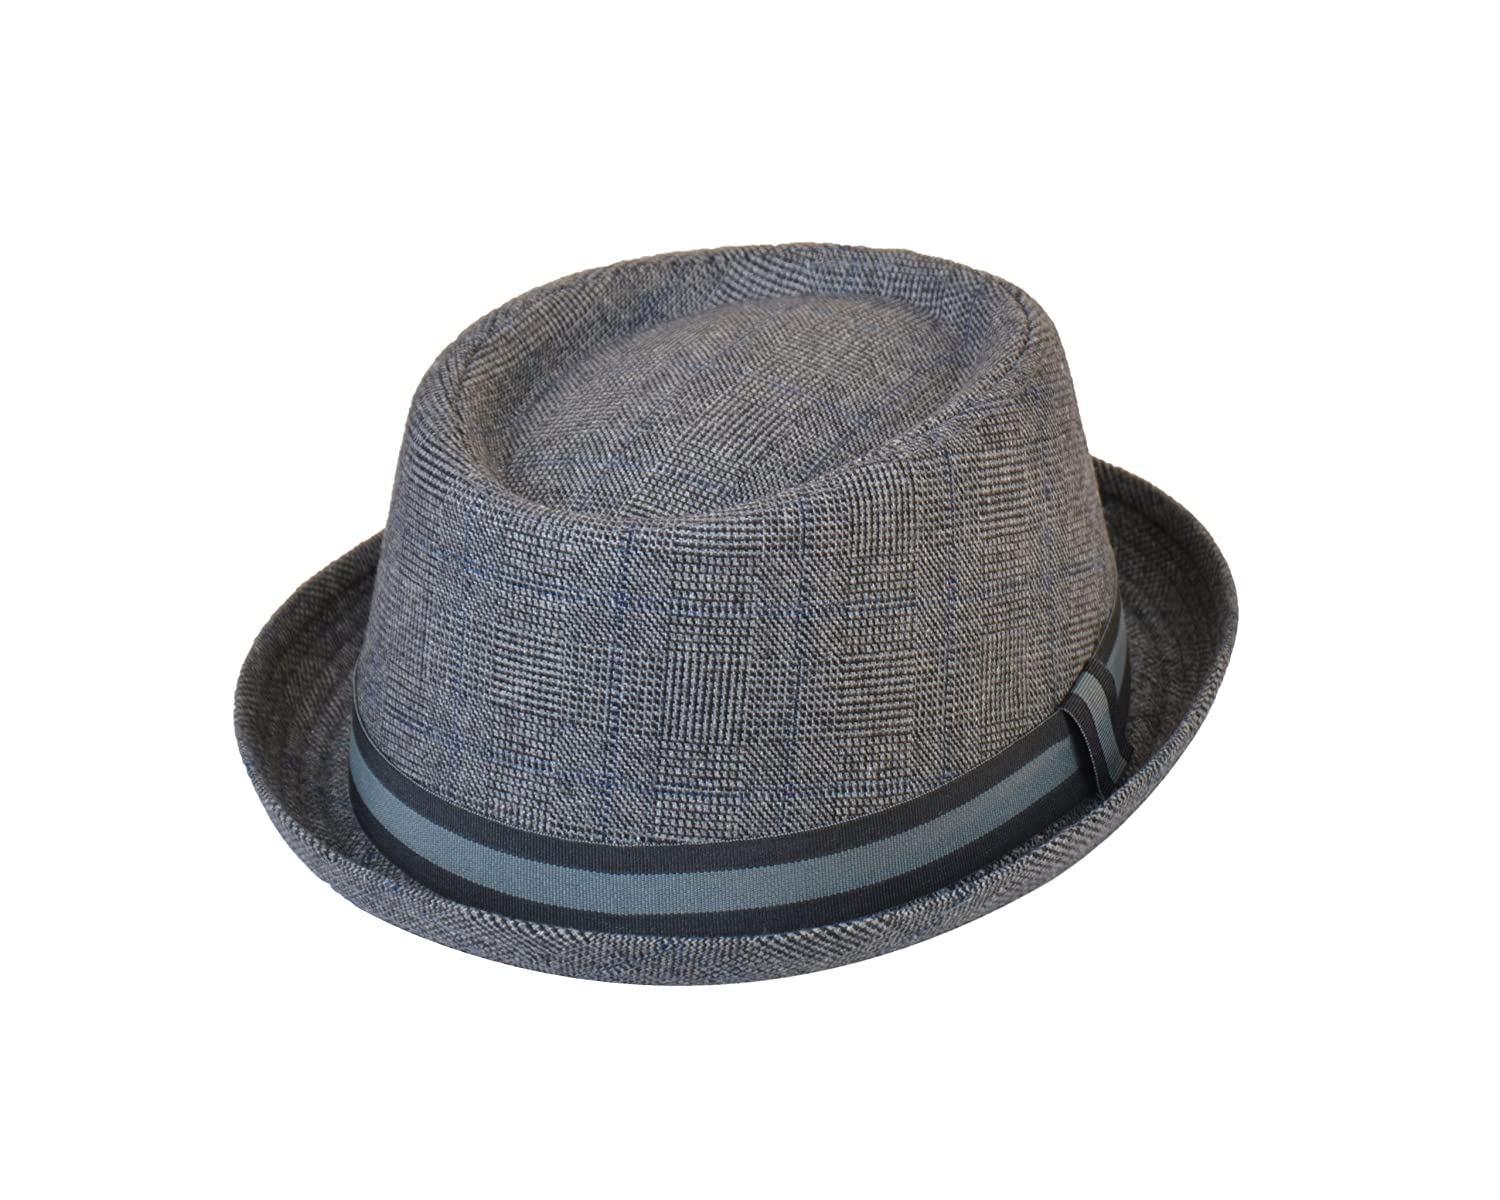 Adults Unisex Classic Tweed Pork Pie Hat in Grey/Blue, Medium/Large